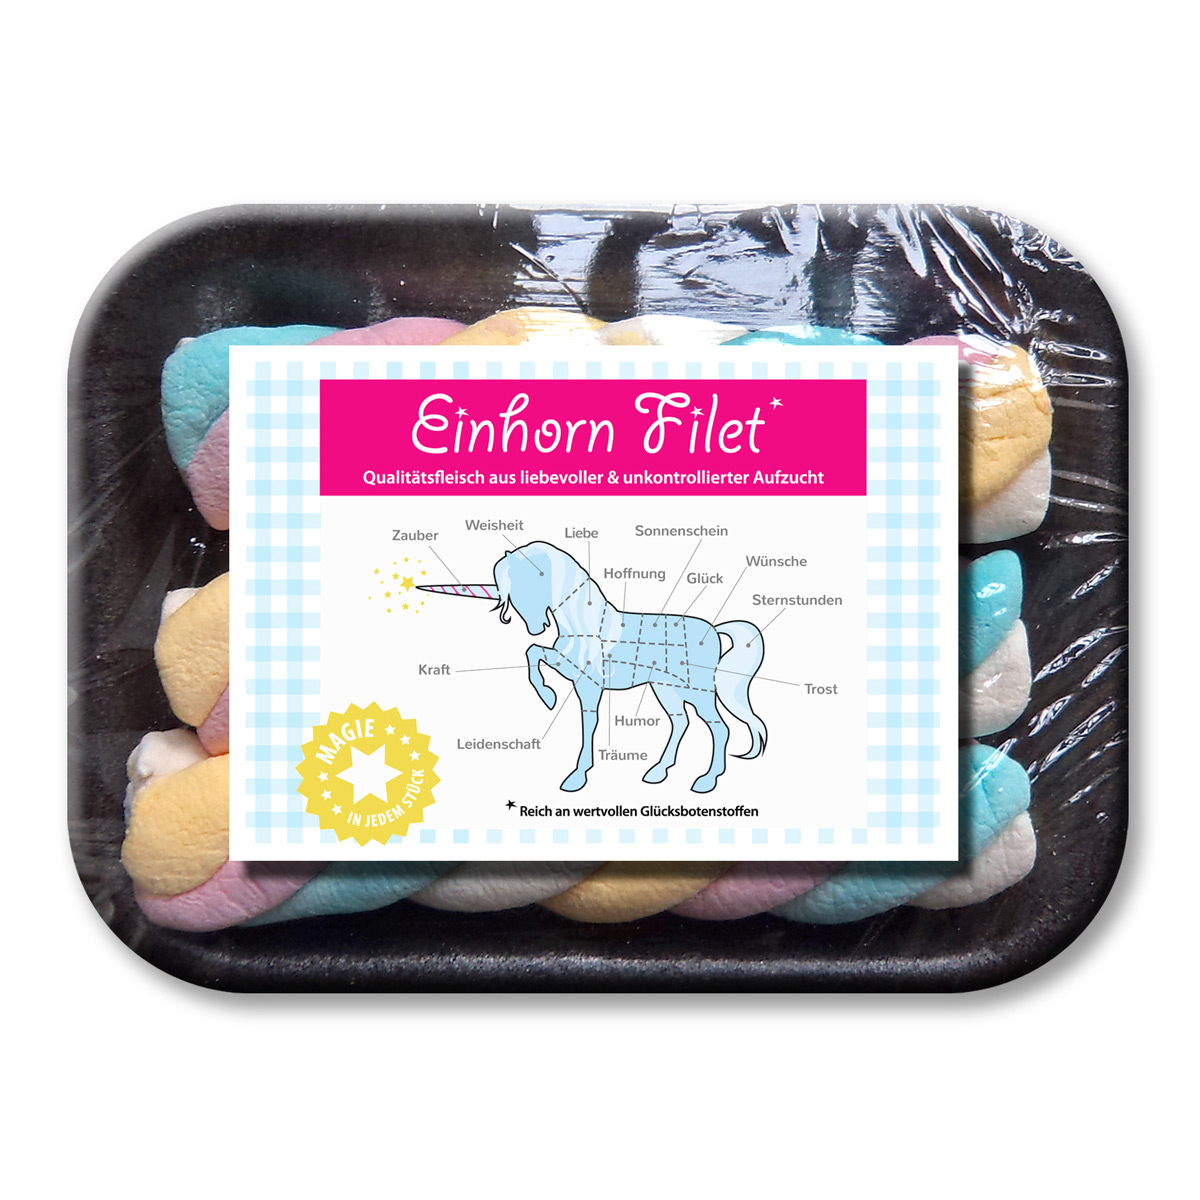 Liebeskummerpillen einhorn filet for Design 3000 de